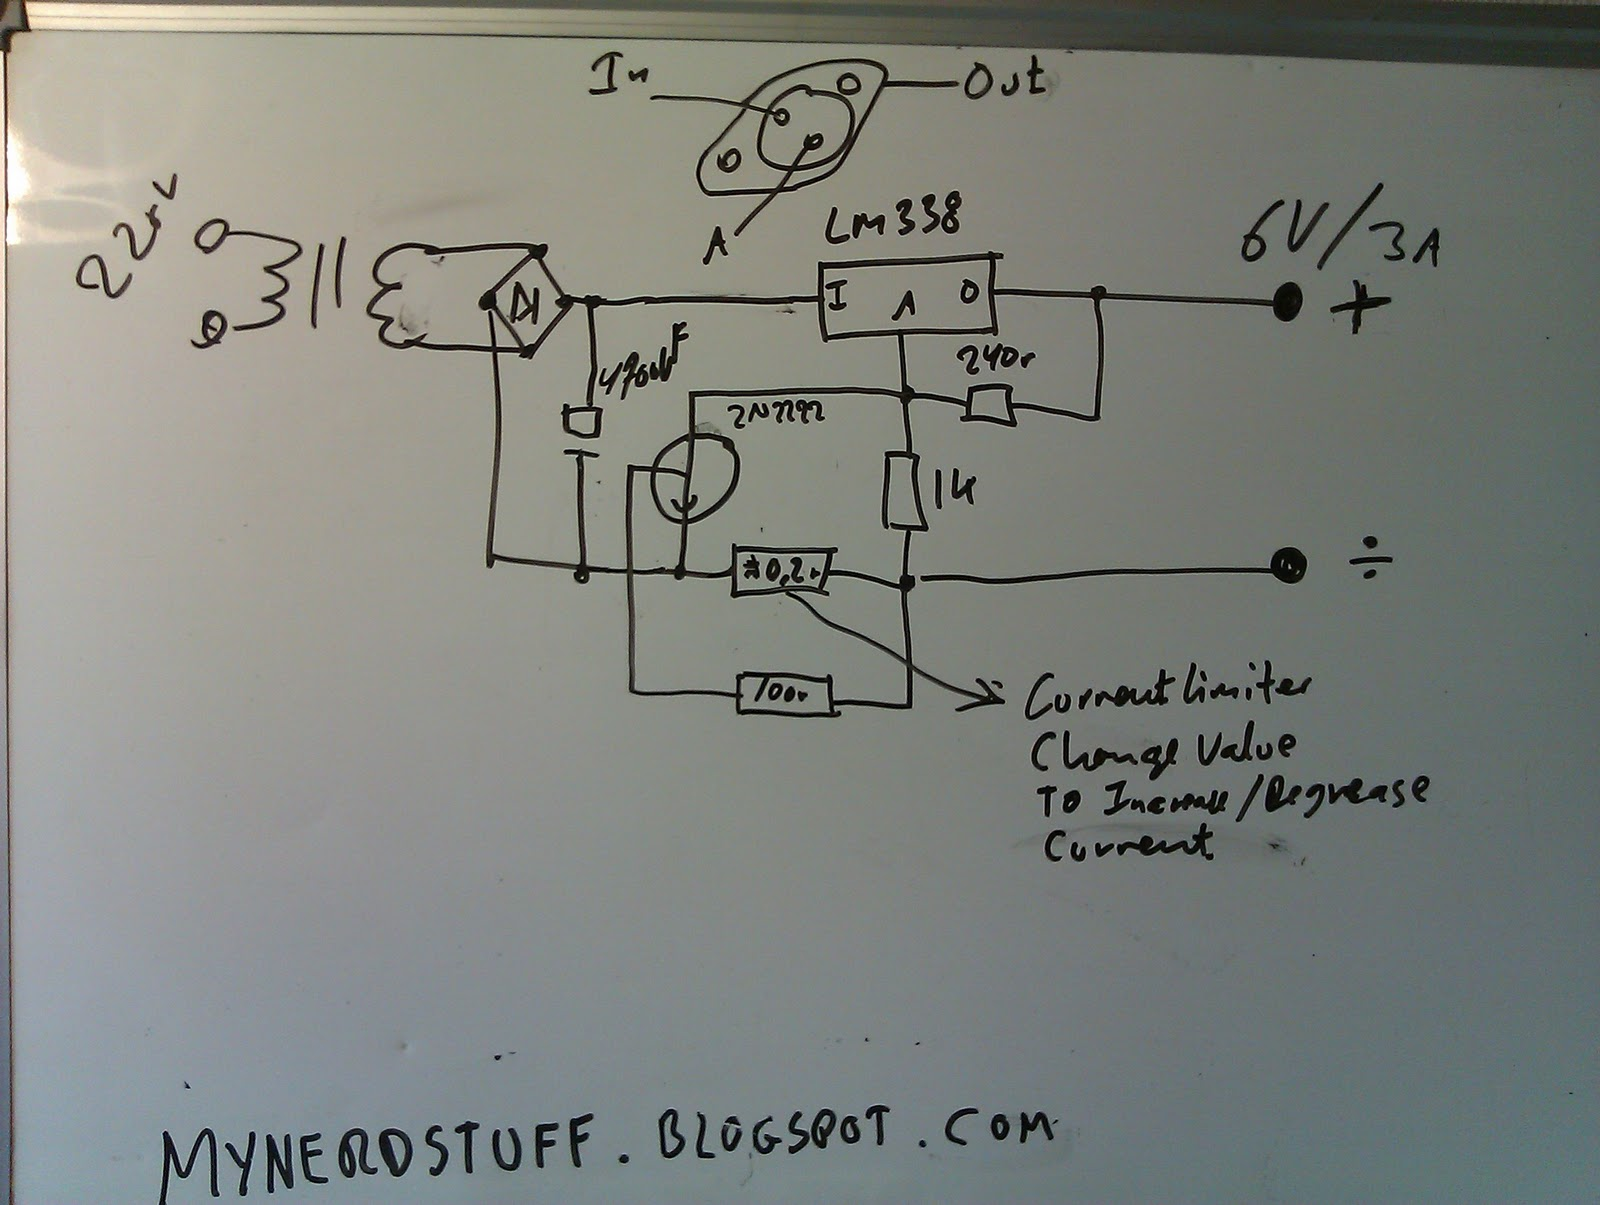 Nerdstuff Power Supply Variable With Lm338 Adjustablecurrentlimitandoutputvoltage Powersupplycircuit Basic Draft Schematic From A Test I Made Earlier Of The Dual Psu Without Current Limiter